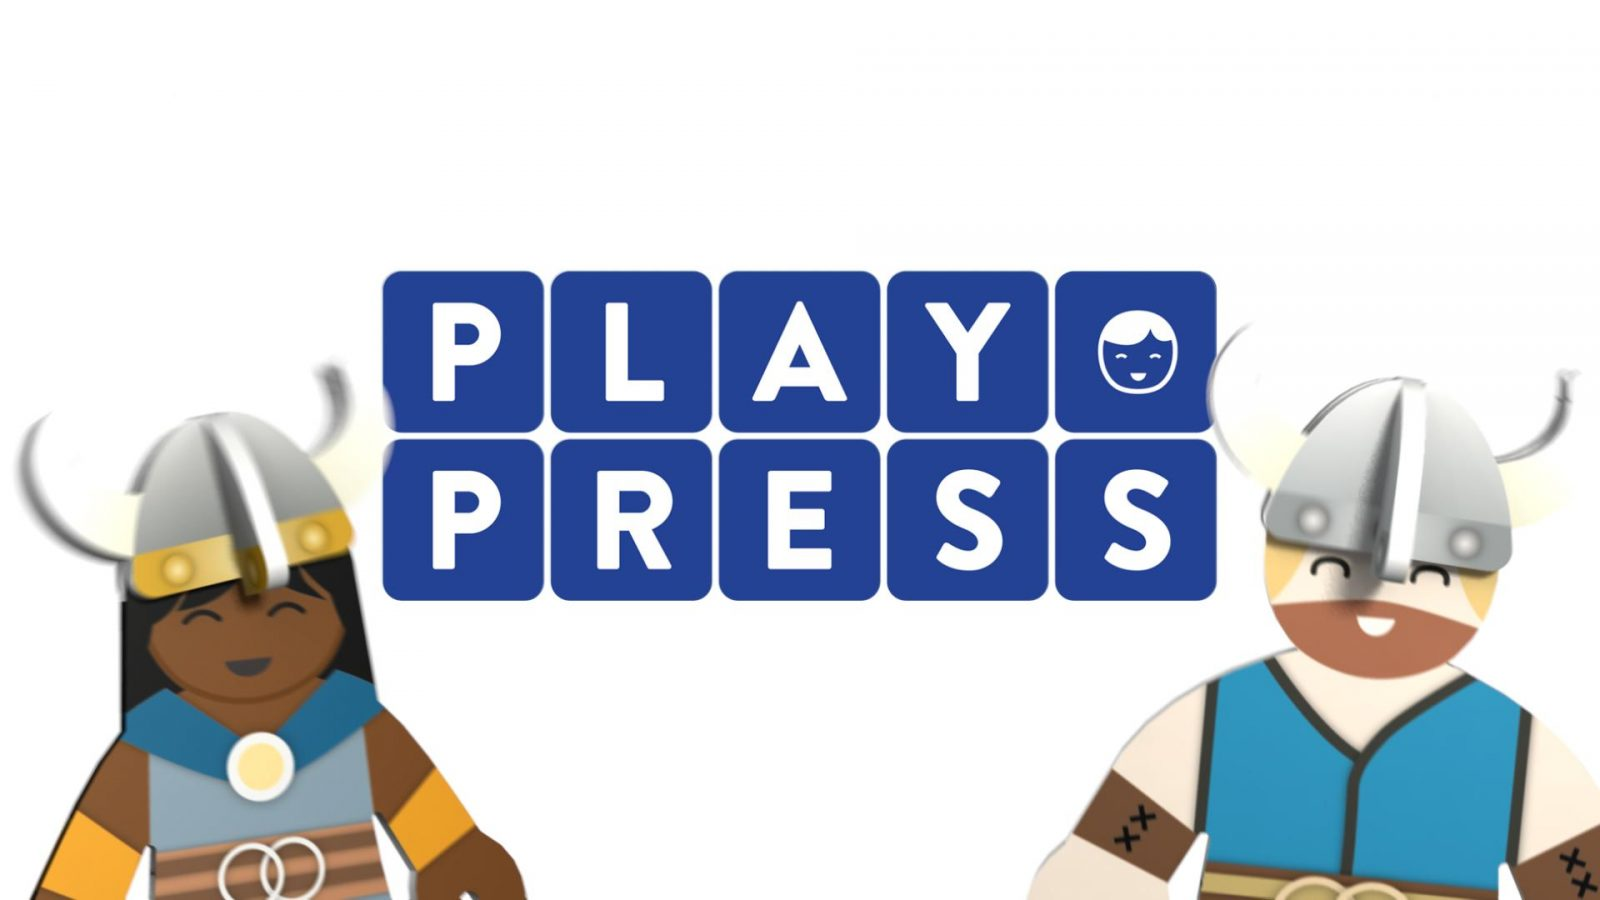 Playpress